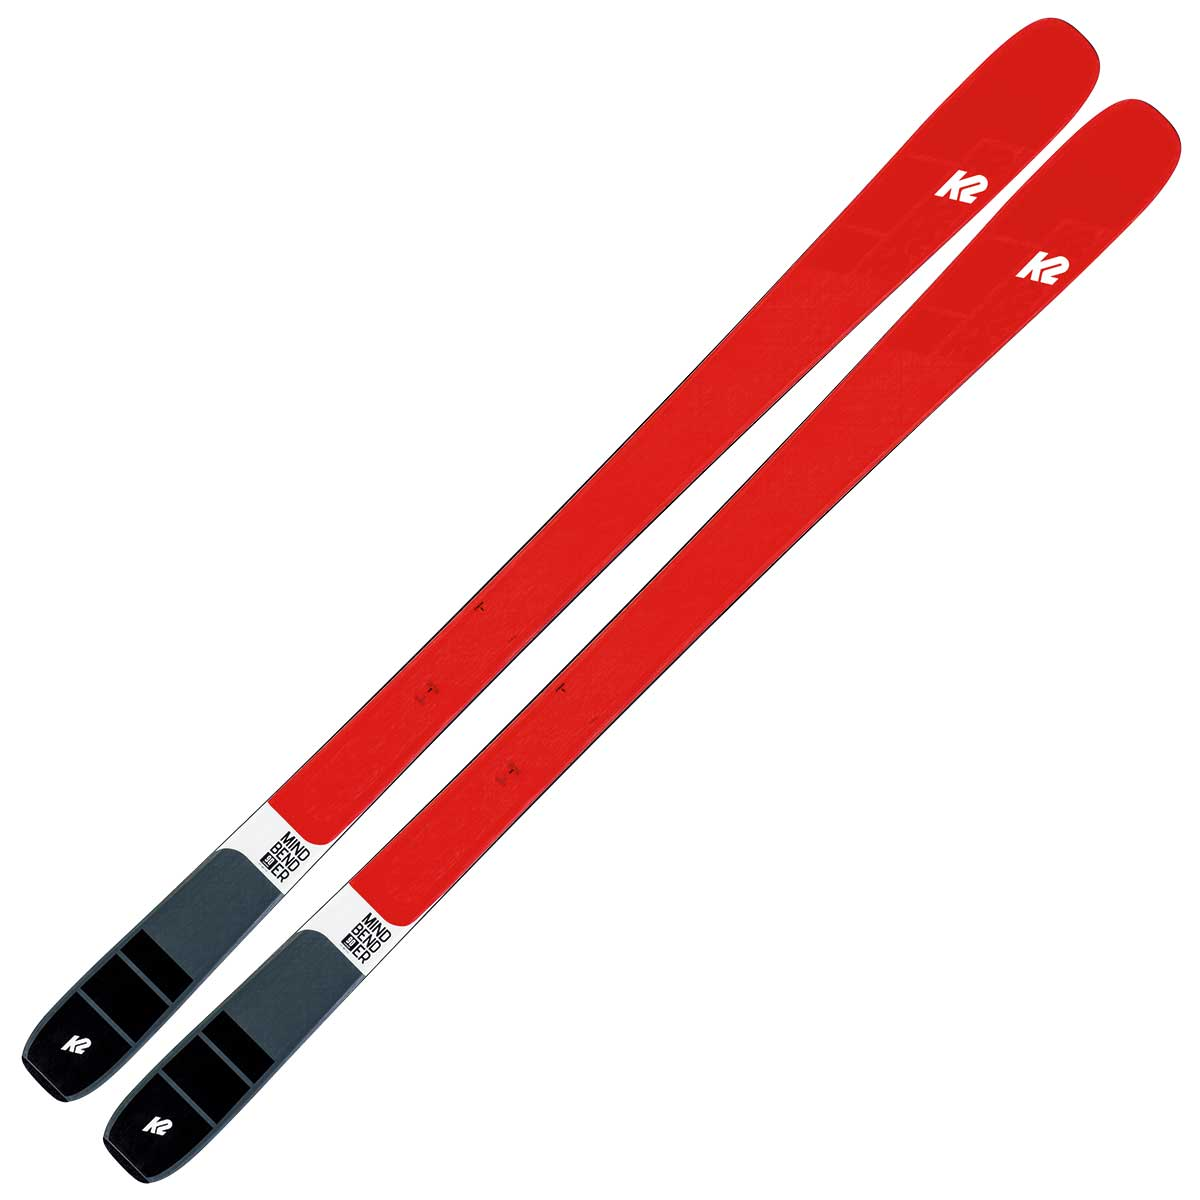 K2 Mindbender 90C ski in red and black